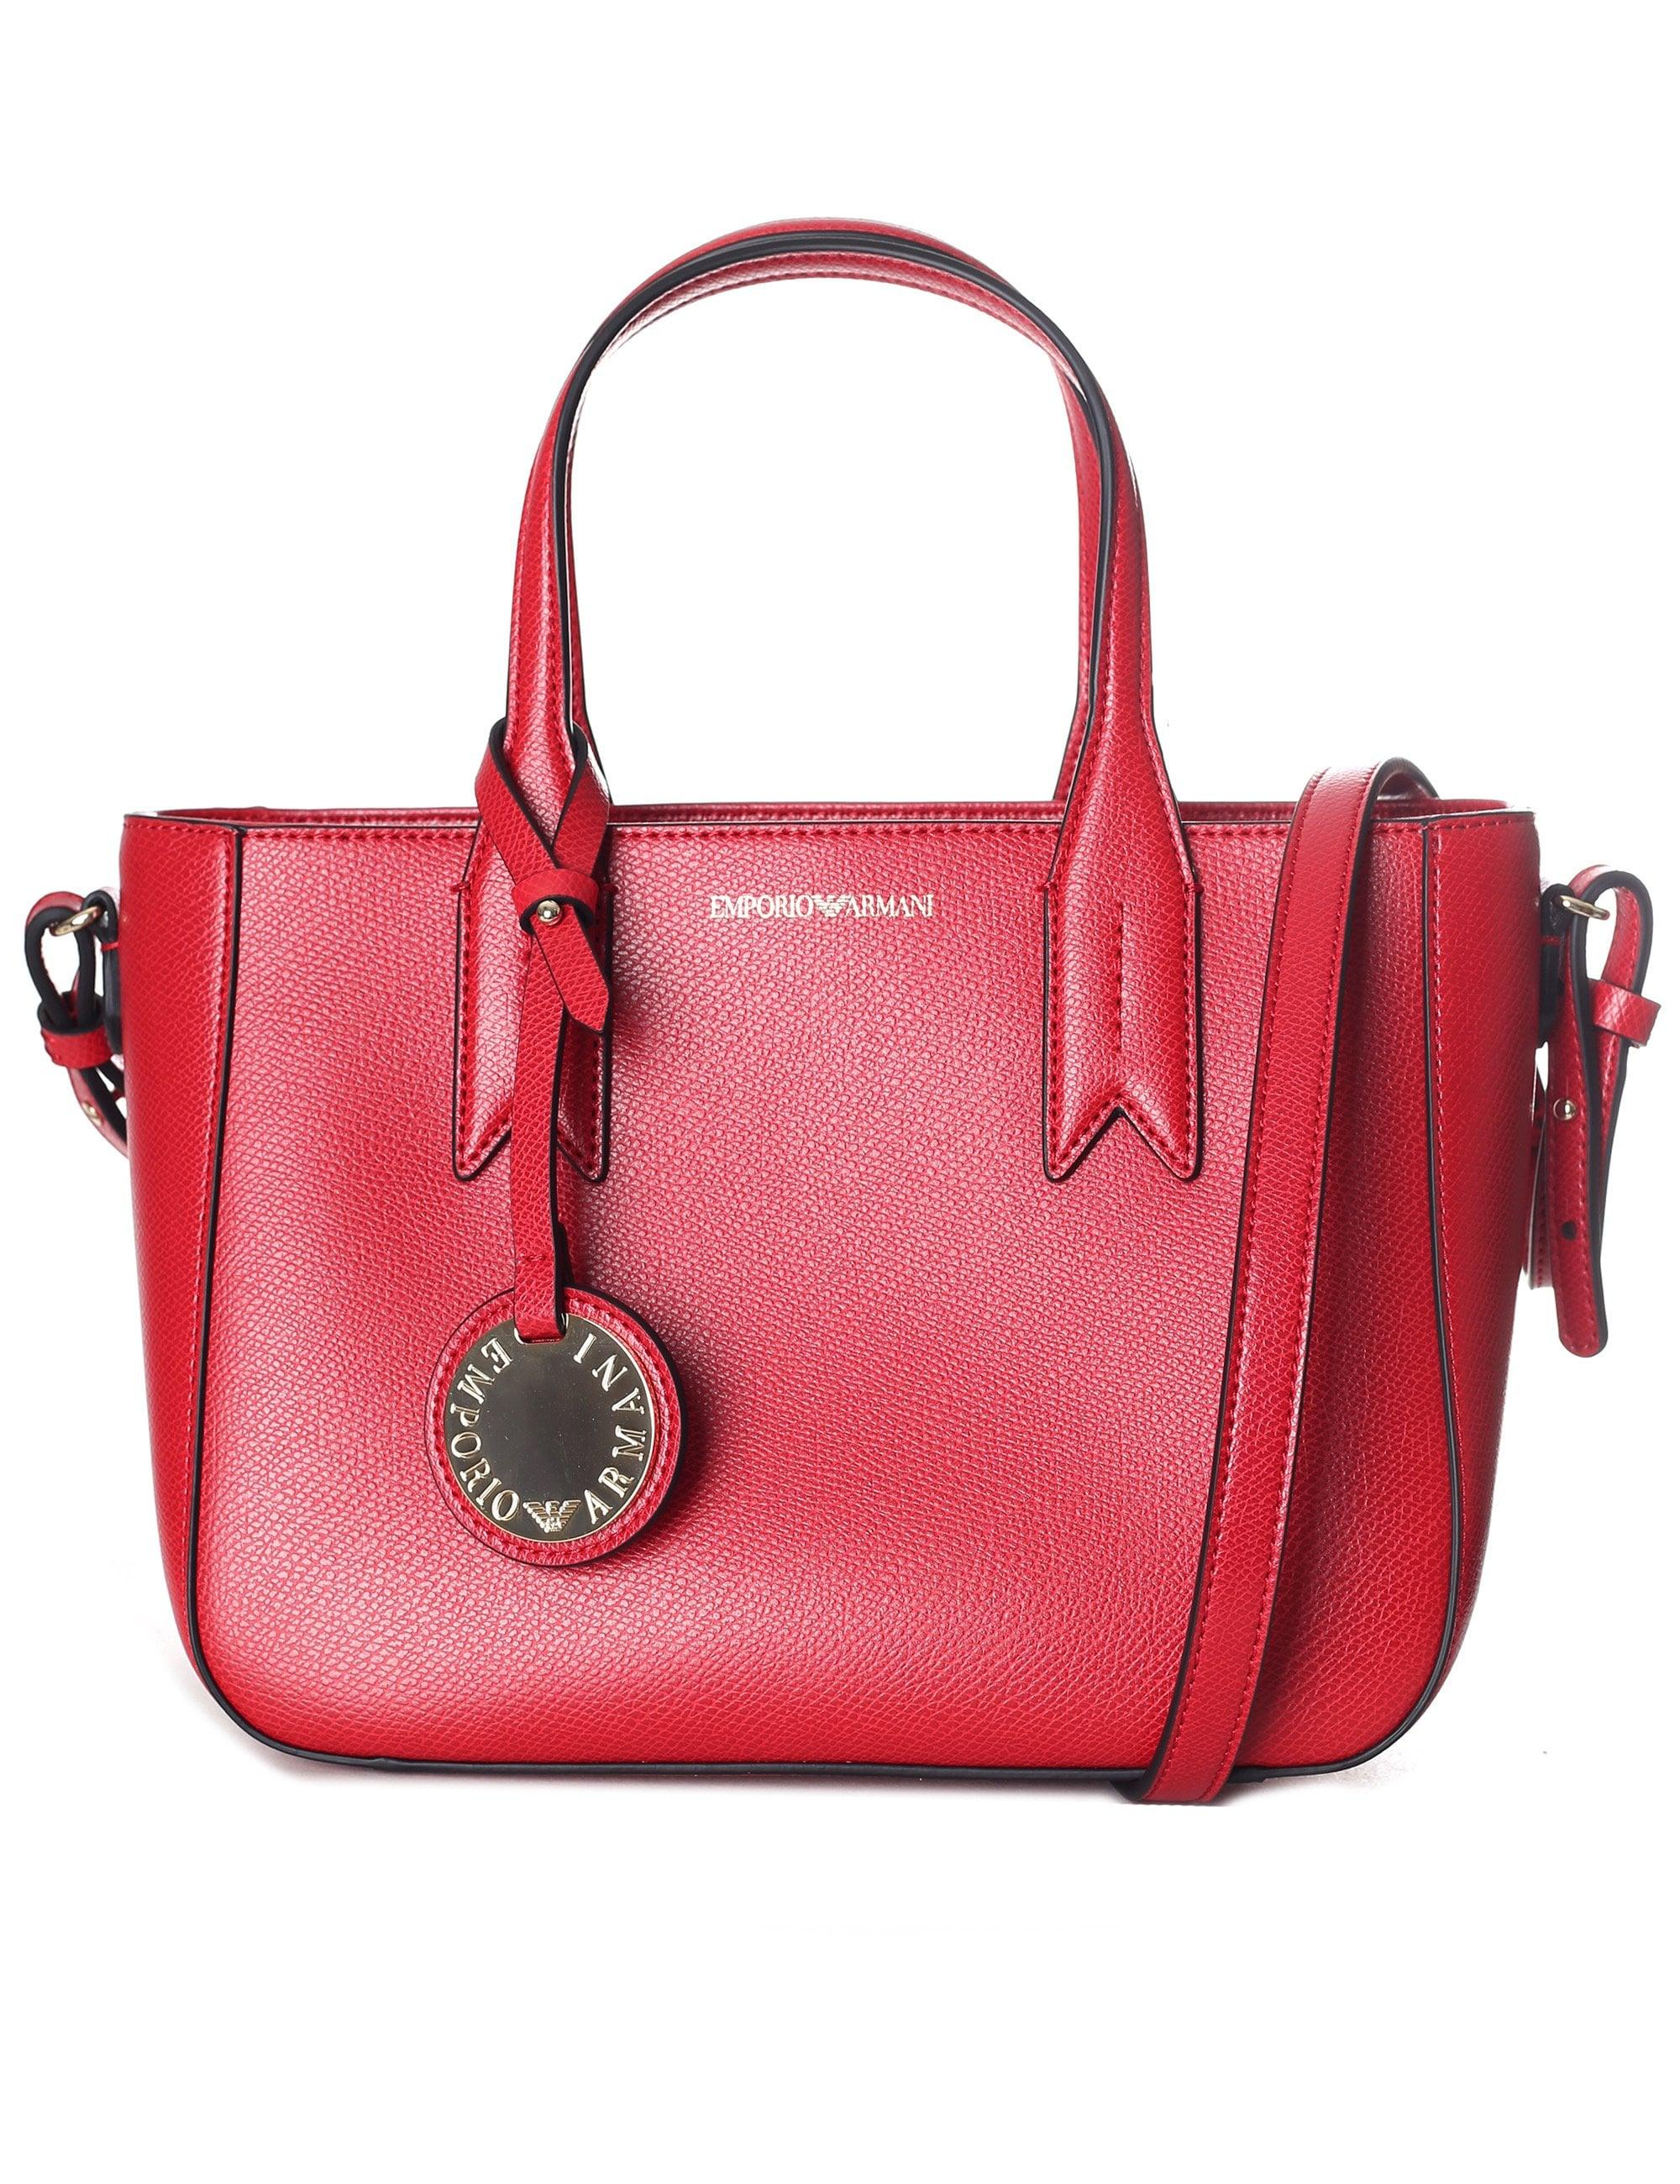 ced8ad02fc4 Emporio Armani Women s Shopping Tote Bag in Red - Lyst